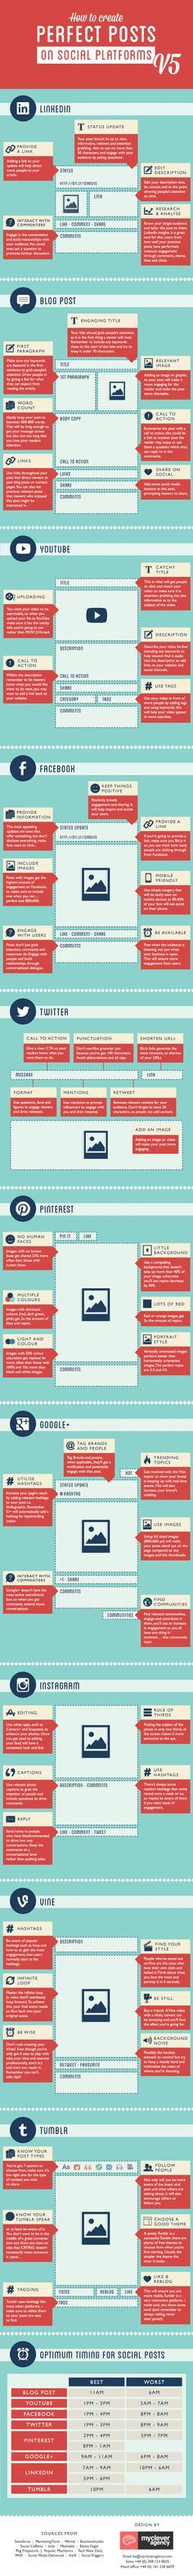 373 best SOCIAL MEDIA MARKETING images on Pinterest Social media - vacation tracking template